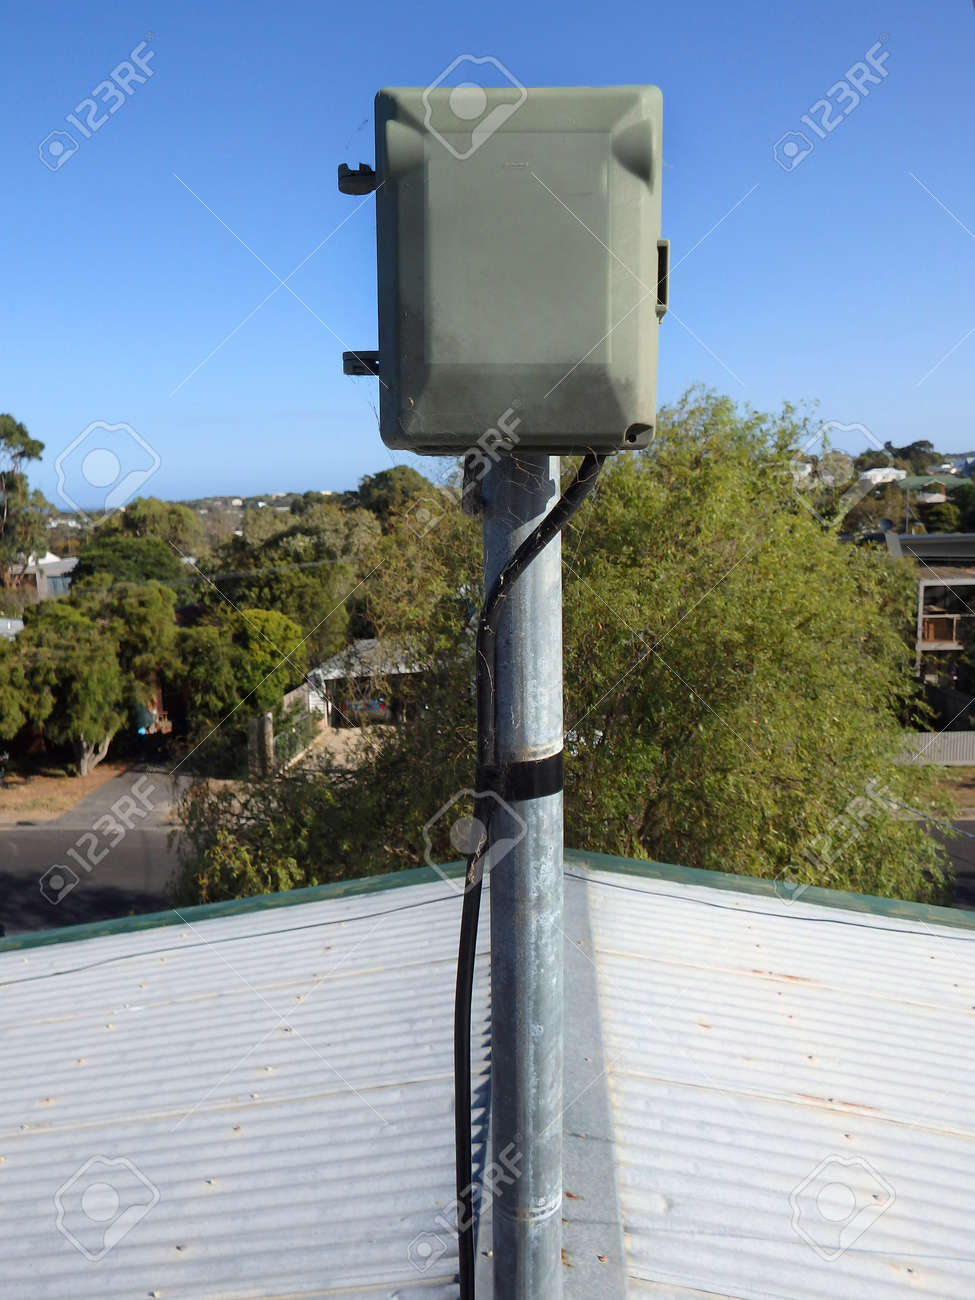 hight resolution of plastic electrical box receptor outdoor on a pole on top of a roo stock photo